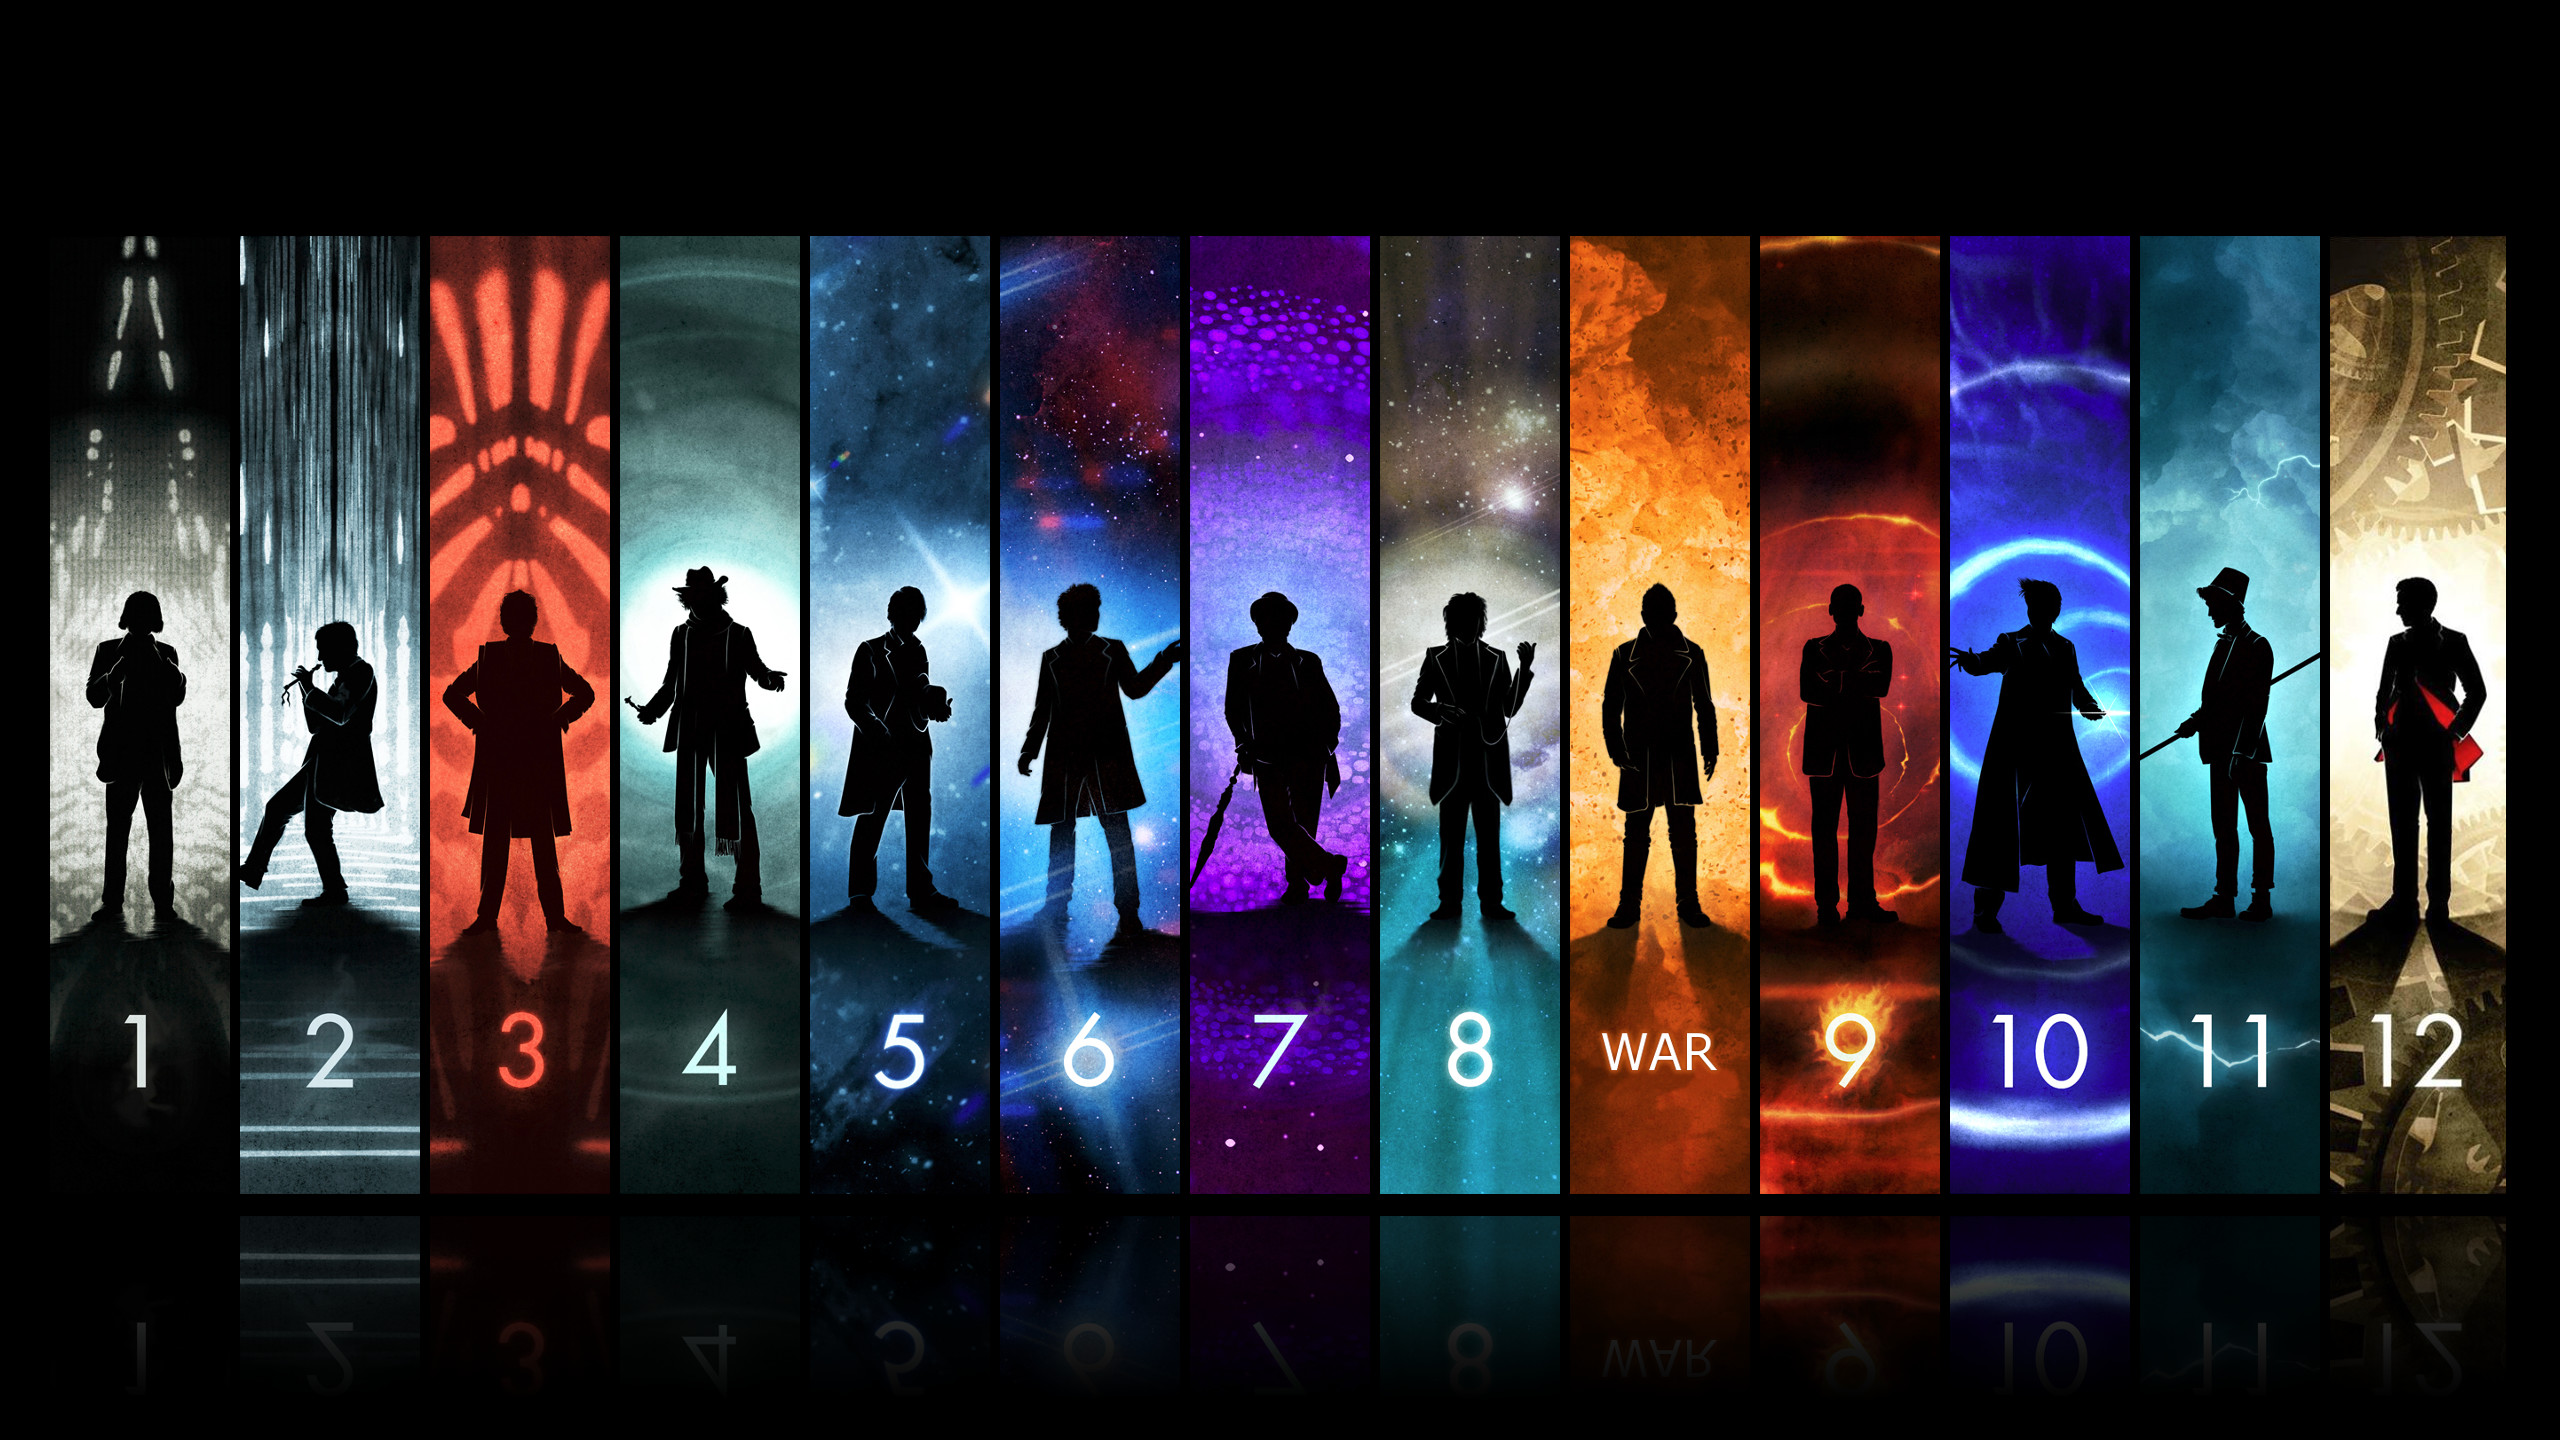 Doctor Who Wallpaper All Doctors 50th anniversary doctors 0 HTML code. Share